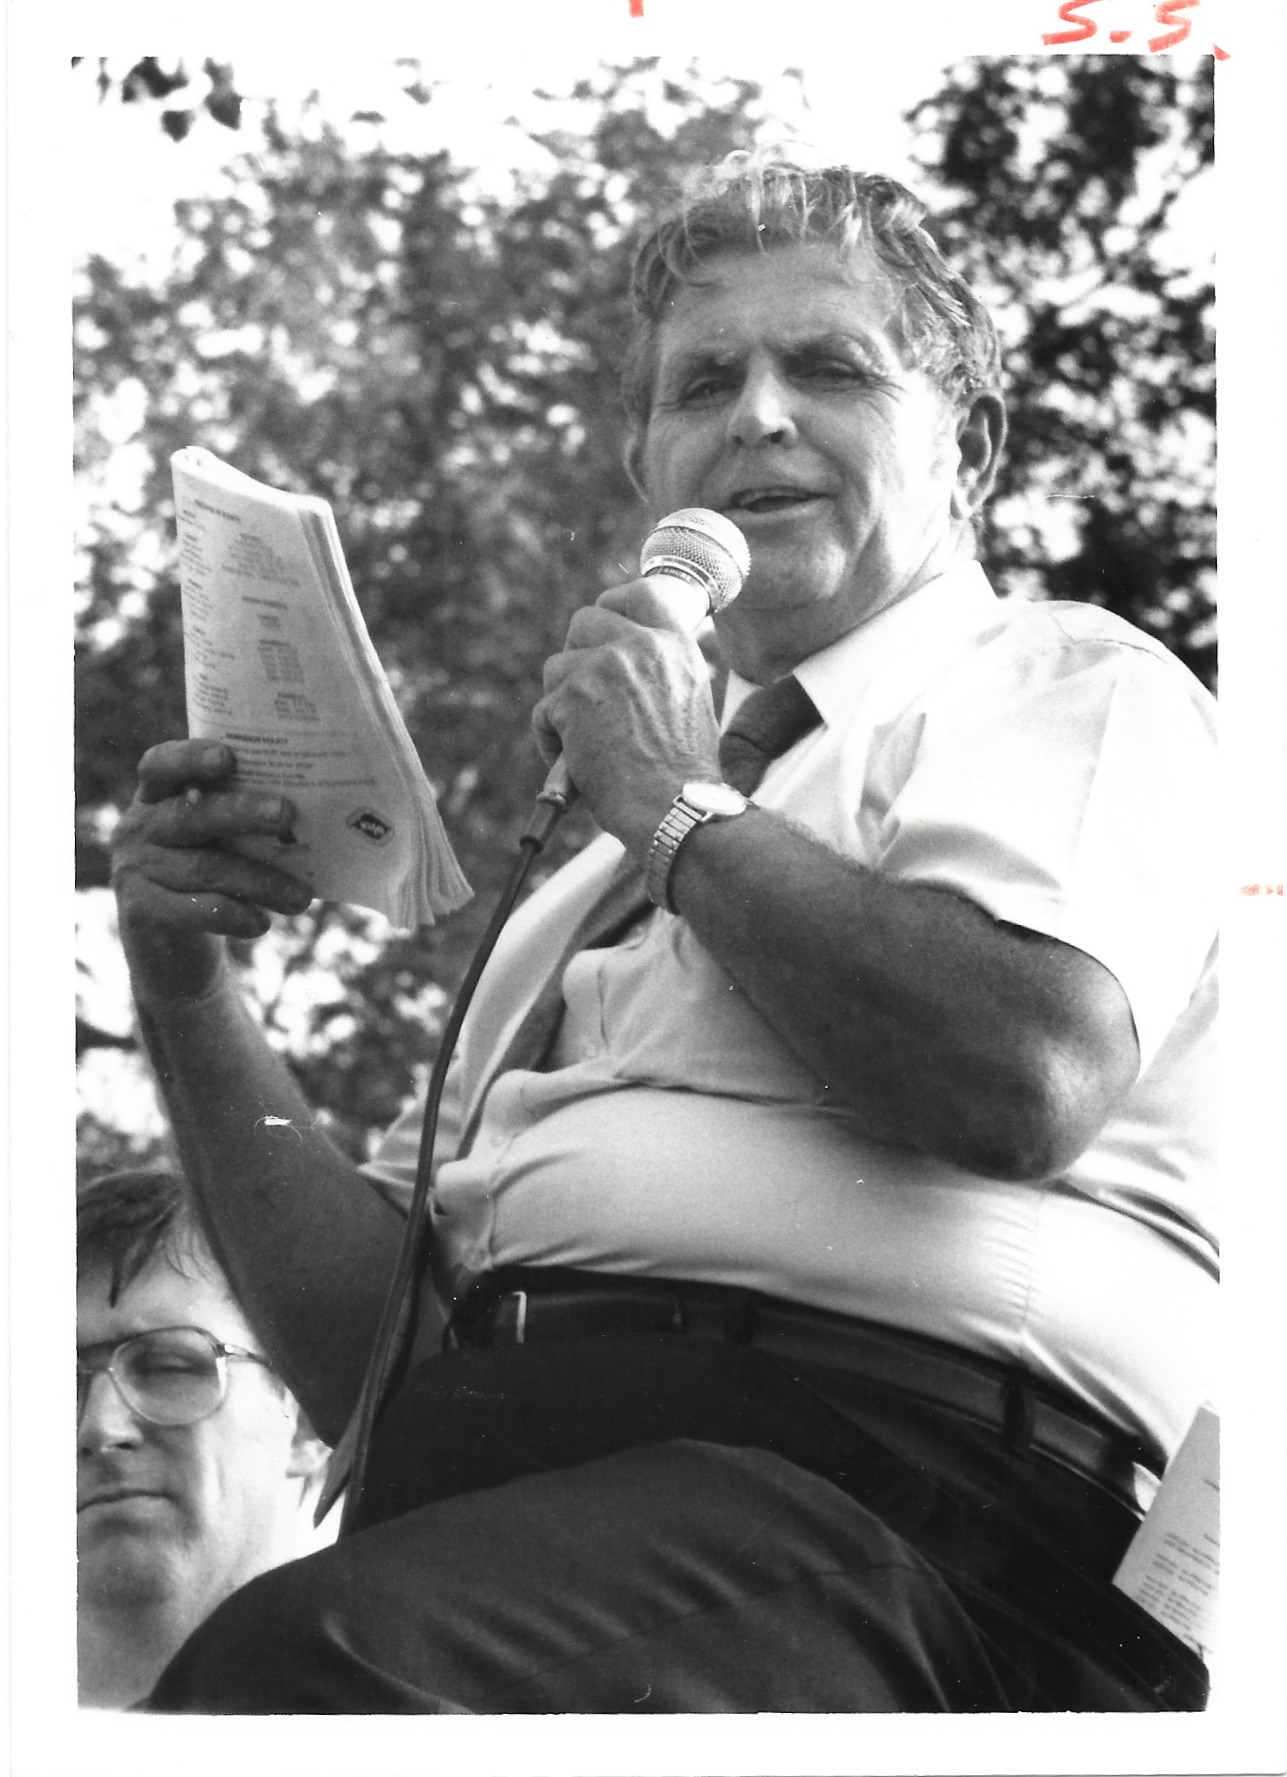 Bud Behm announcing the parade